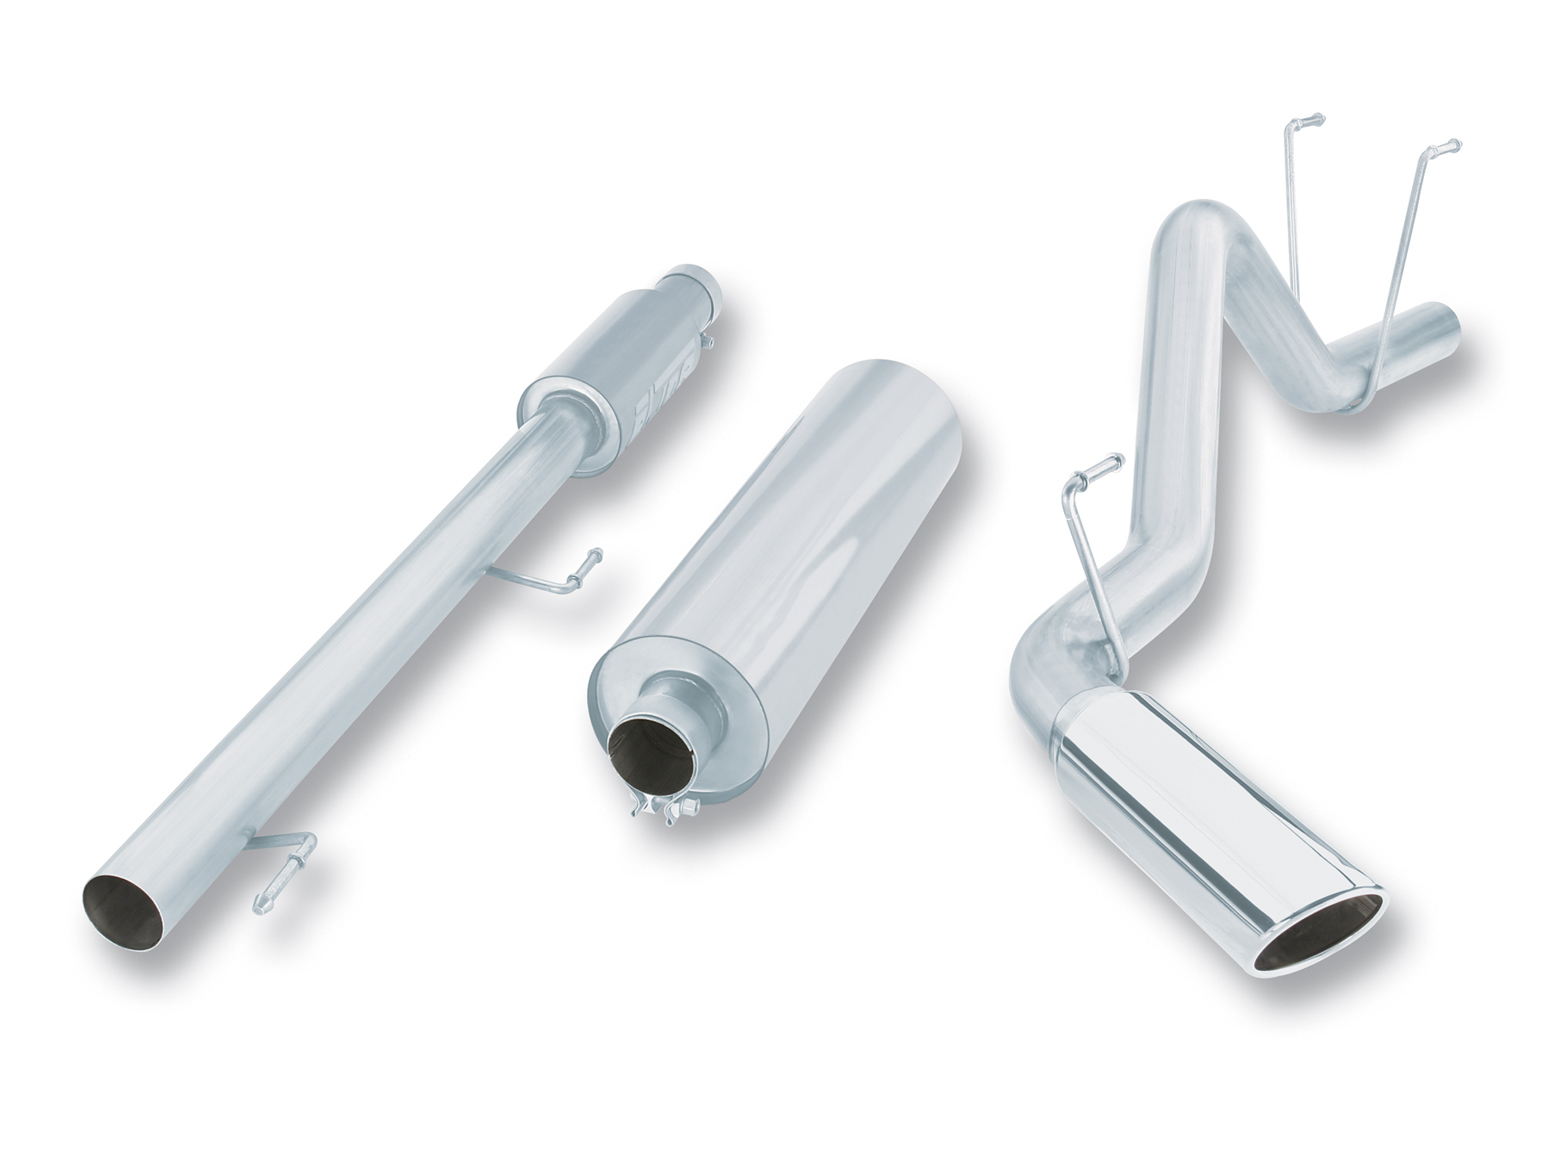 "Dodge Ram 1500 5.7l V8 2006-2008 Borla 3"" Cat-Back Exhaust System - Single Round Rolled Angle-Cut  Long X Single Round Rolled Angle-Cut Intercooled Tips"" Dia"